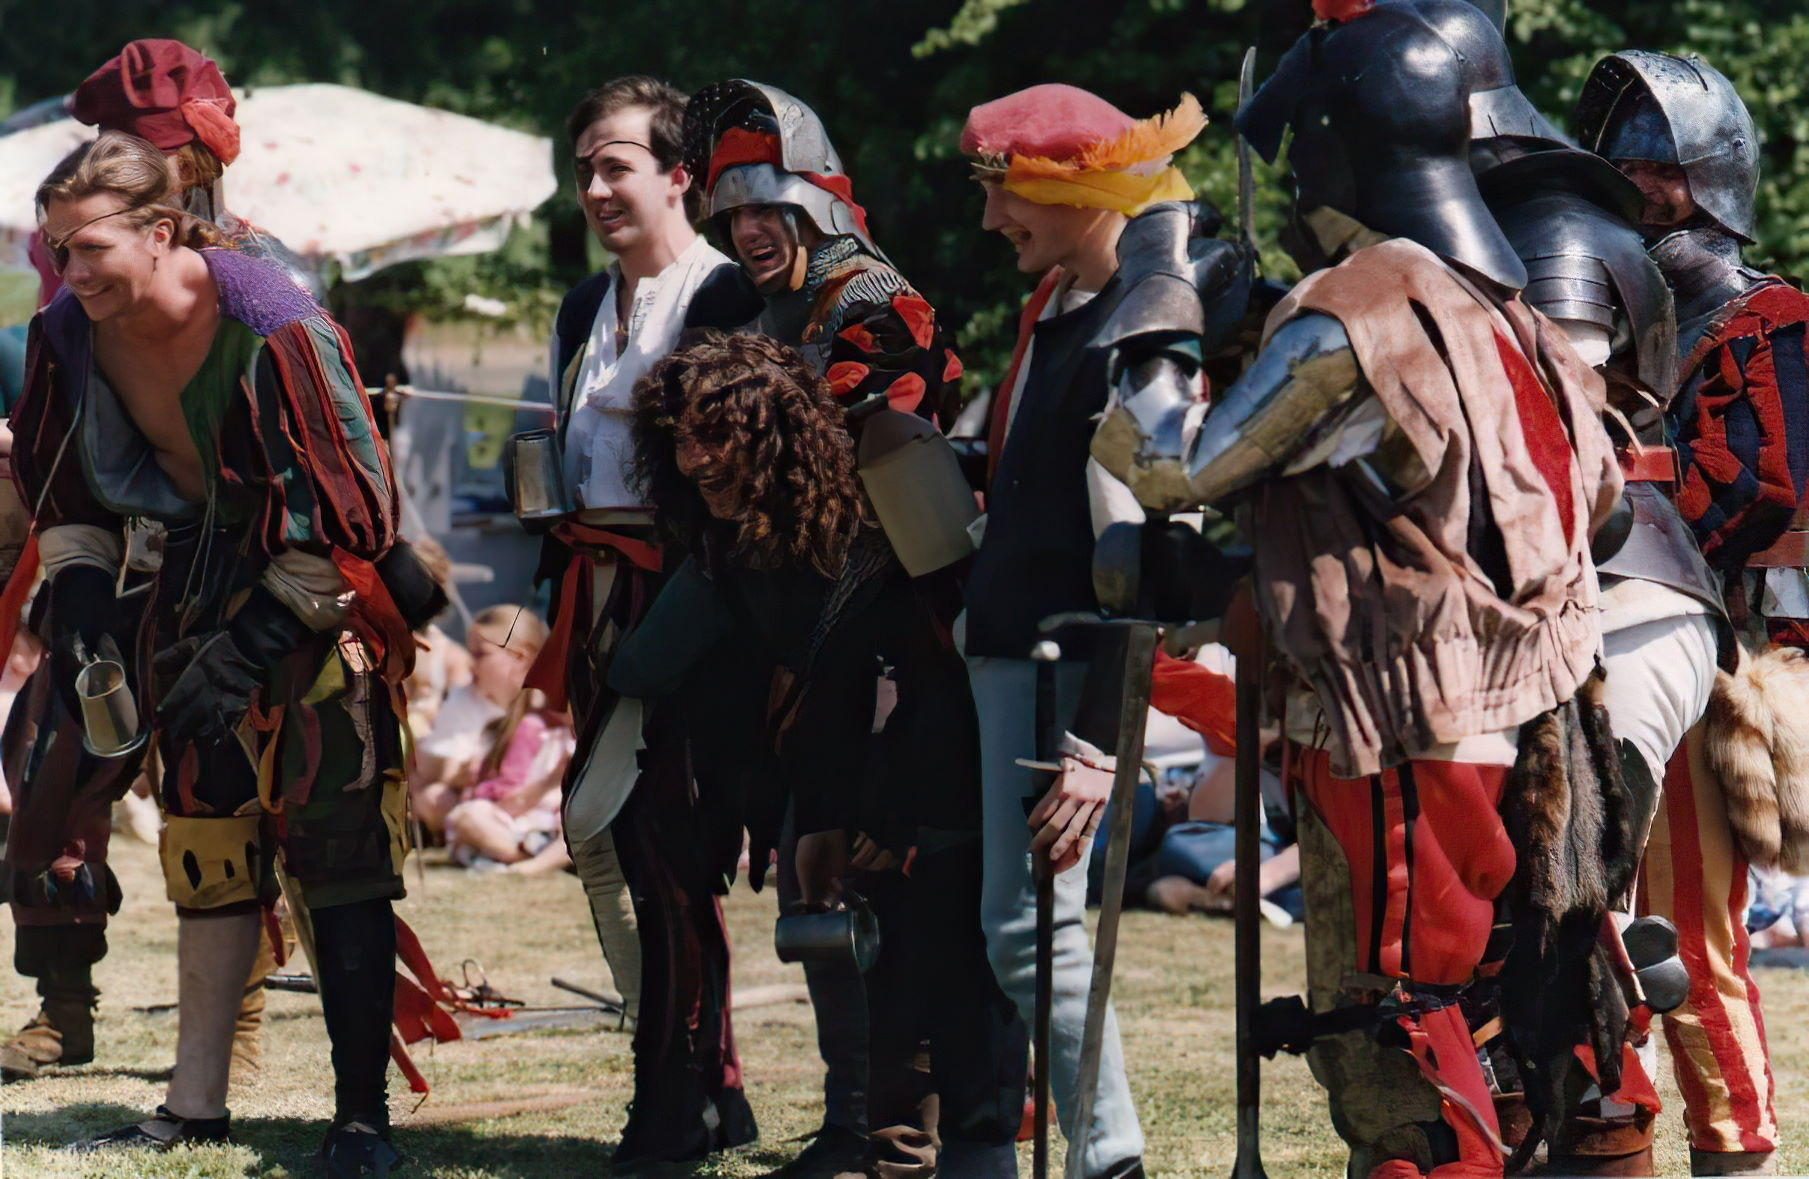 The Morrigan's Landsknect contingent at an event in Maidenhead in 1995. I'm the one in the centre wearing a salet and black and red doublet